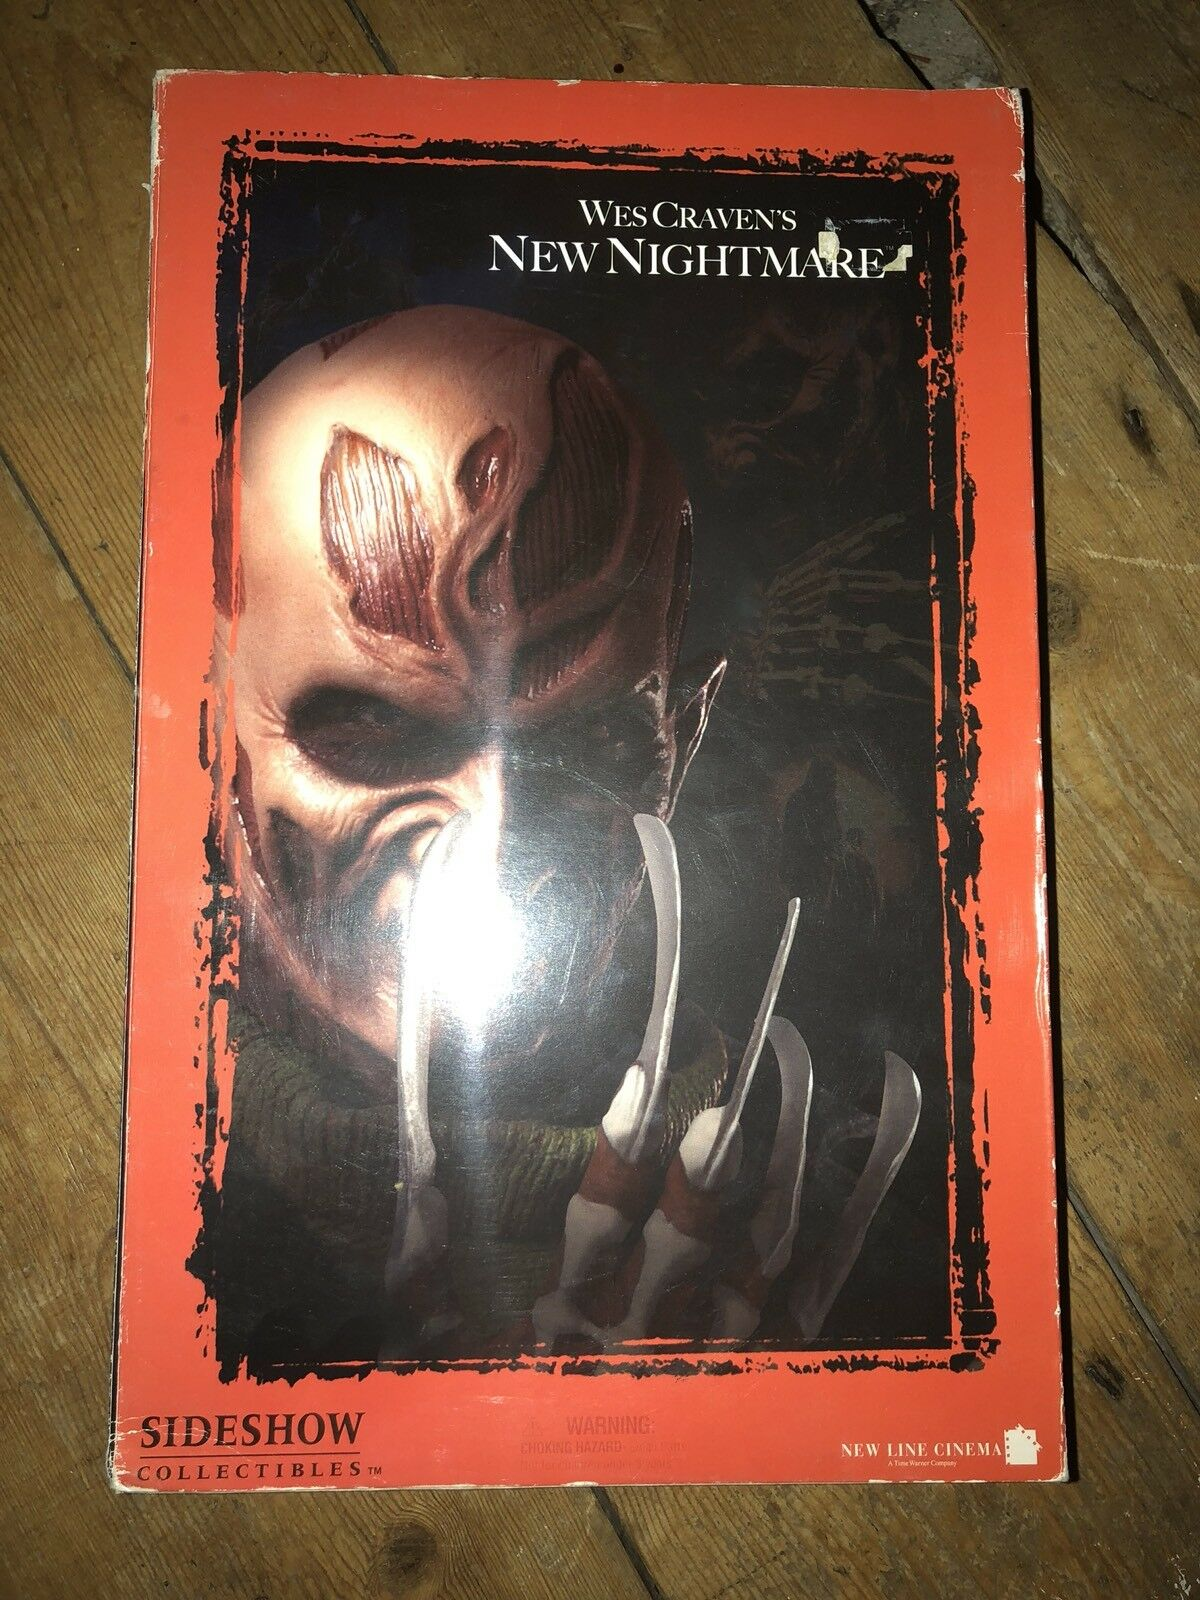 Sideshow Wes Craven's New Nightmare FROTdy Krueger AF SSC 118